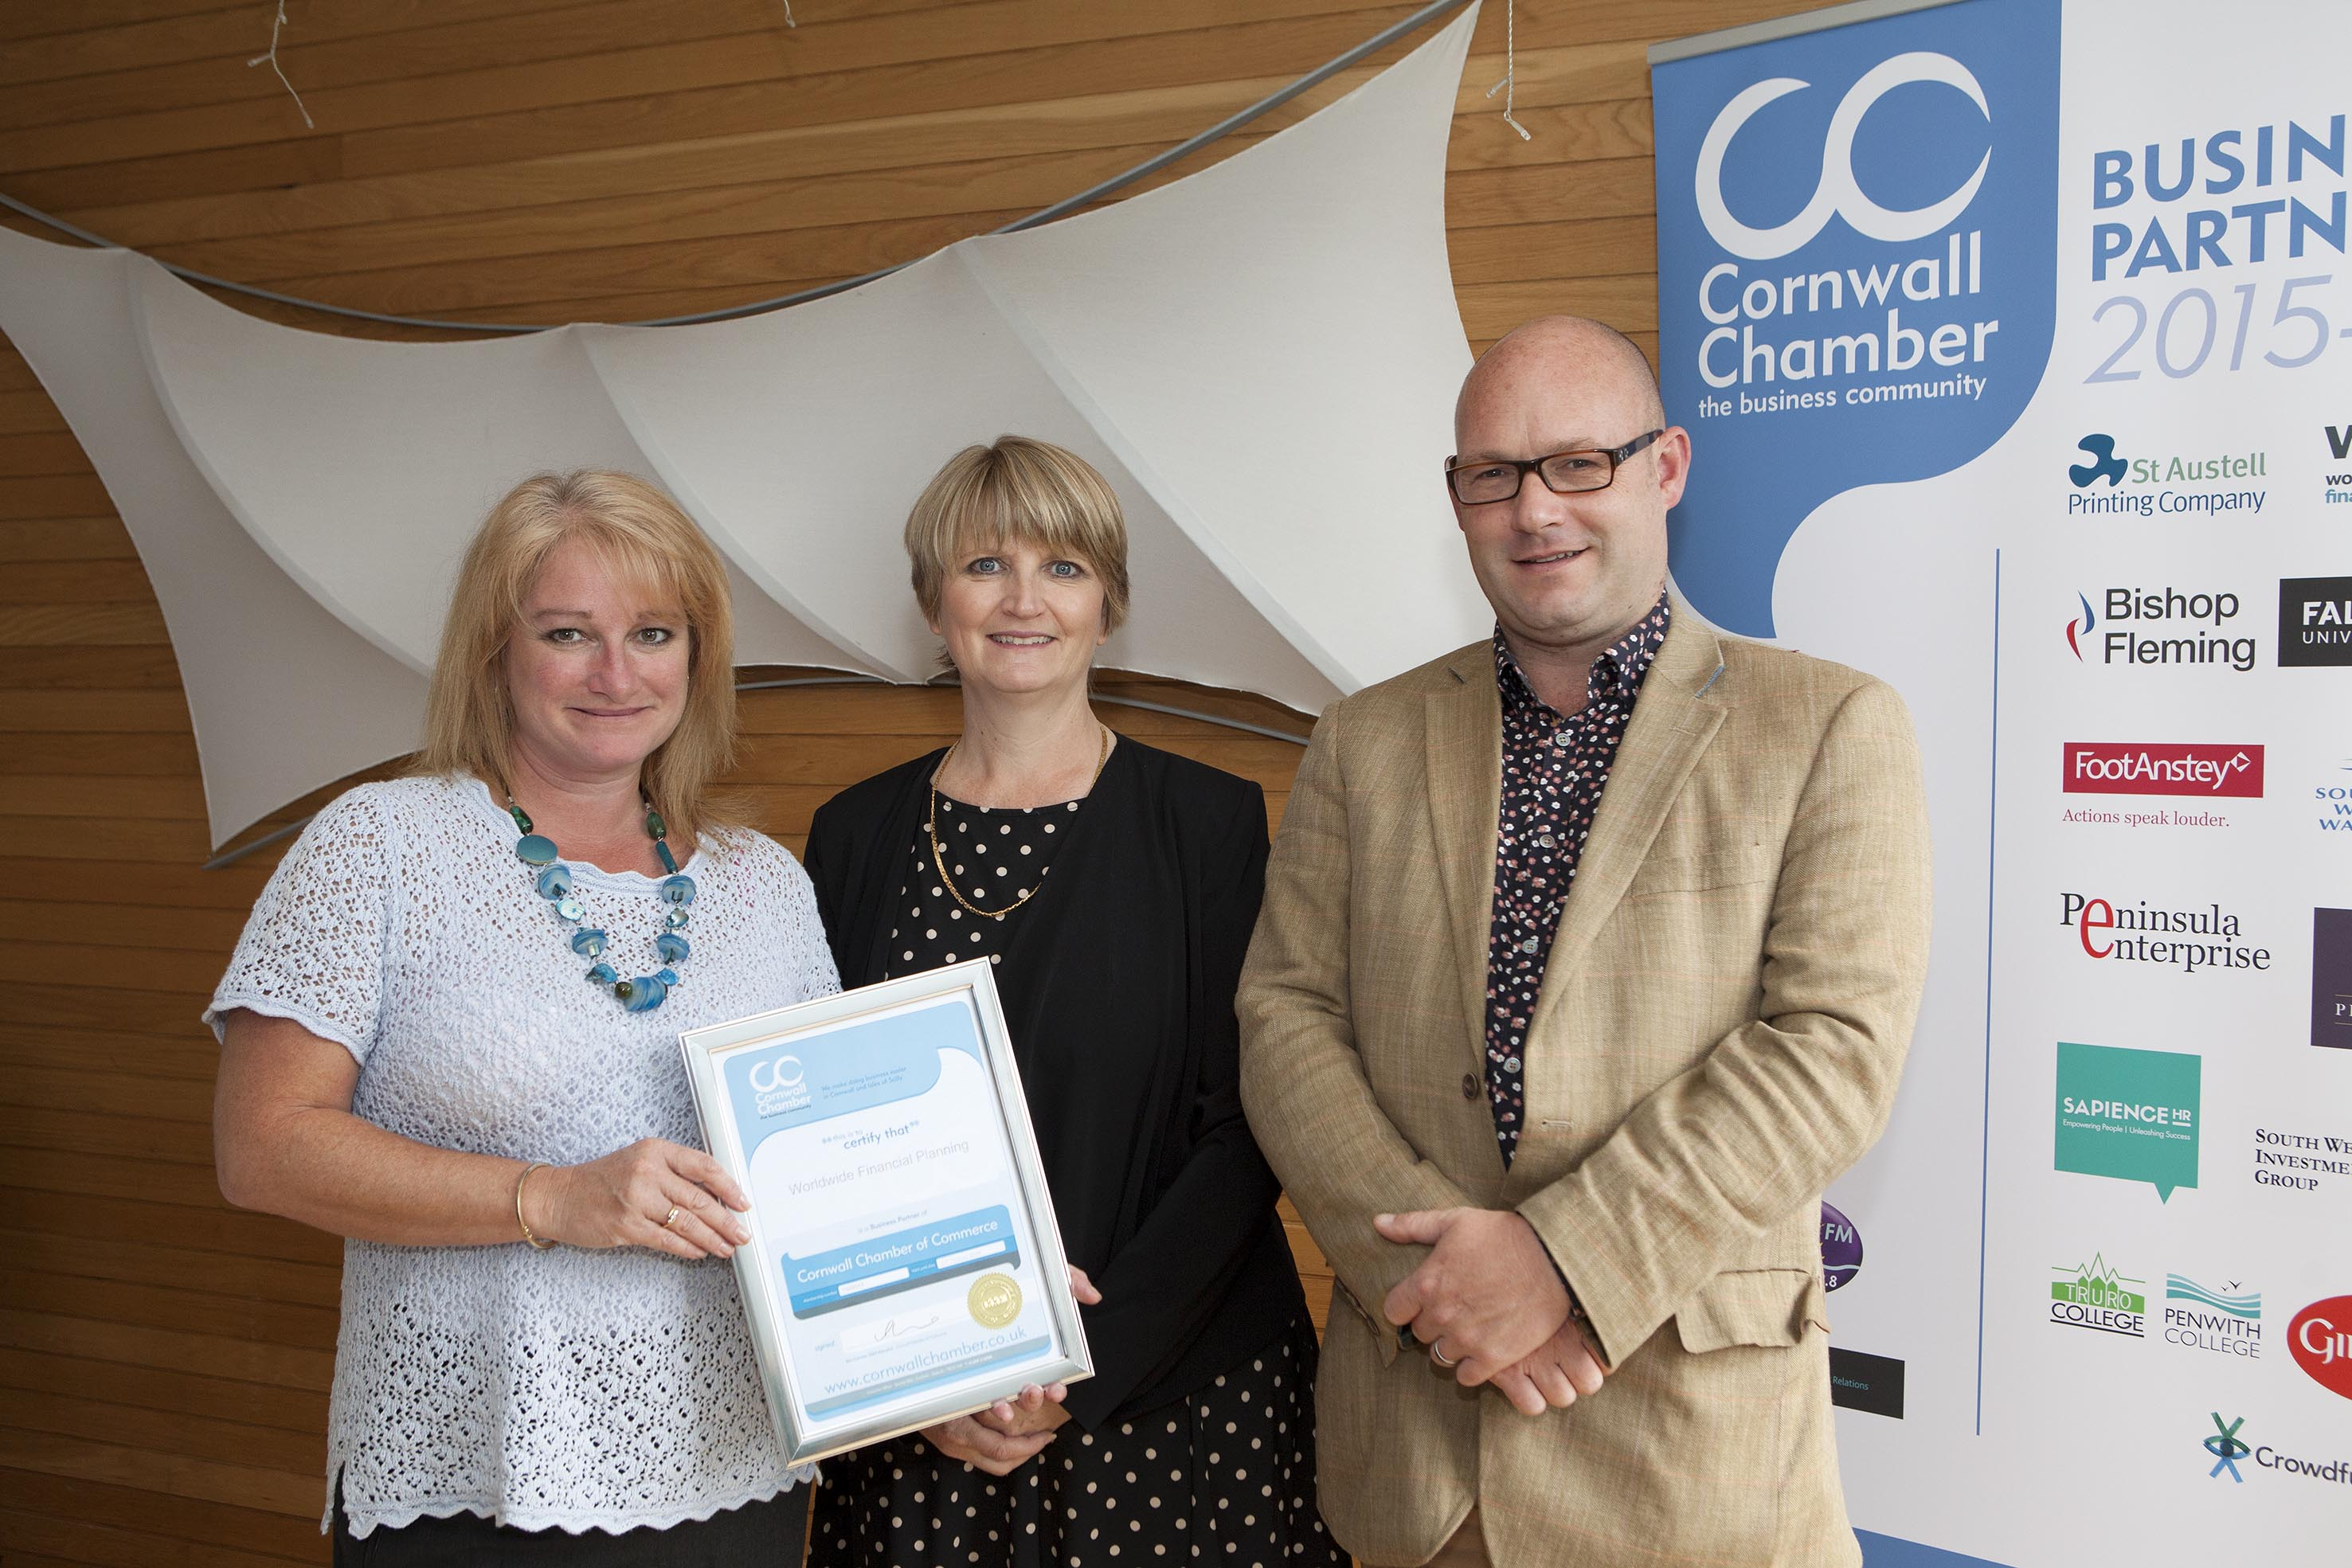 Worldwide Financial Planning Partnership with Cornwall Chamber of Commerce.